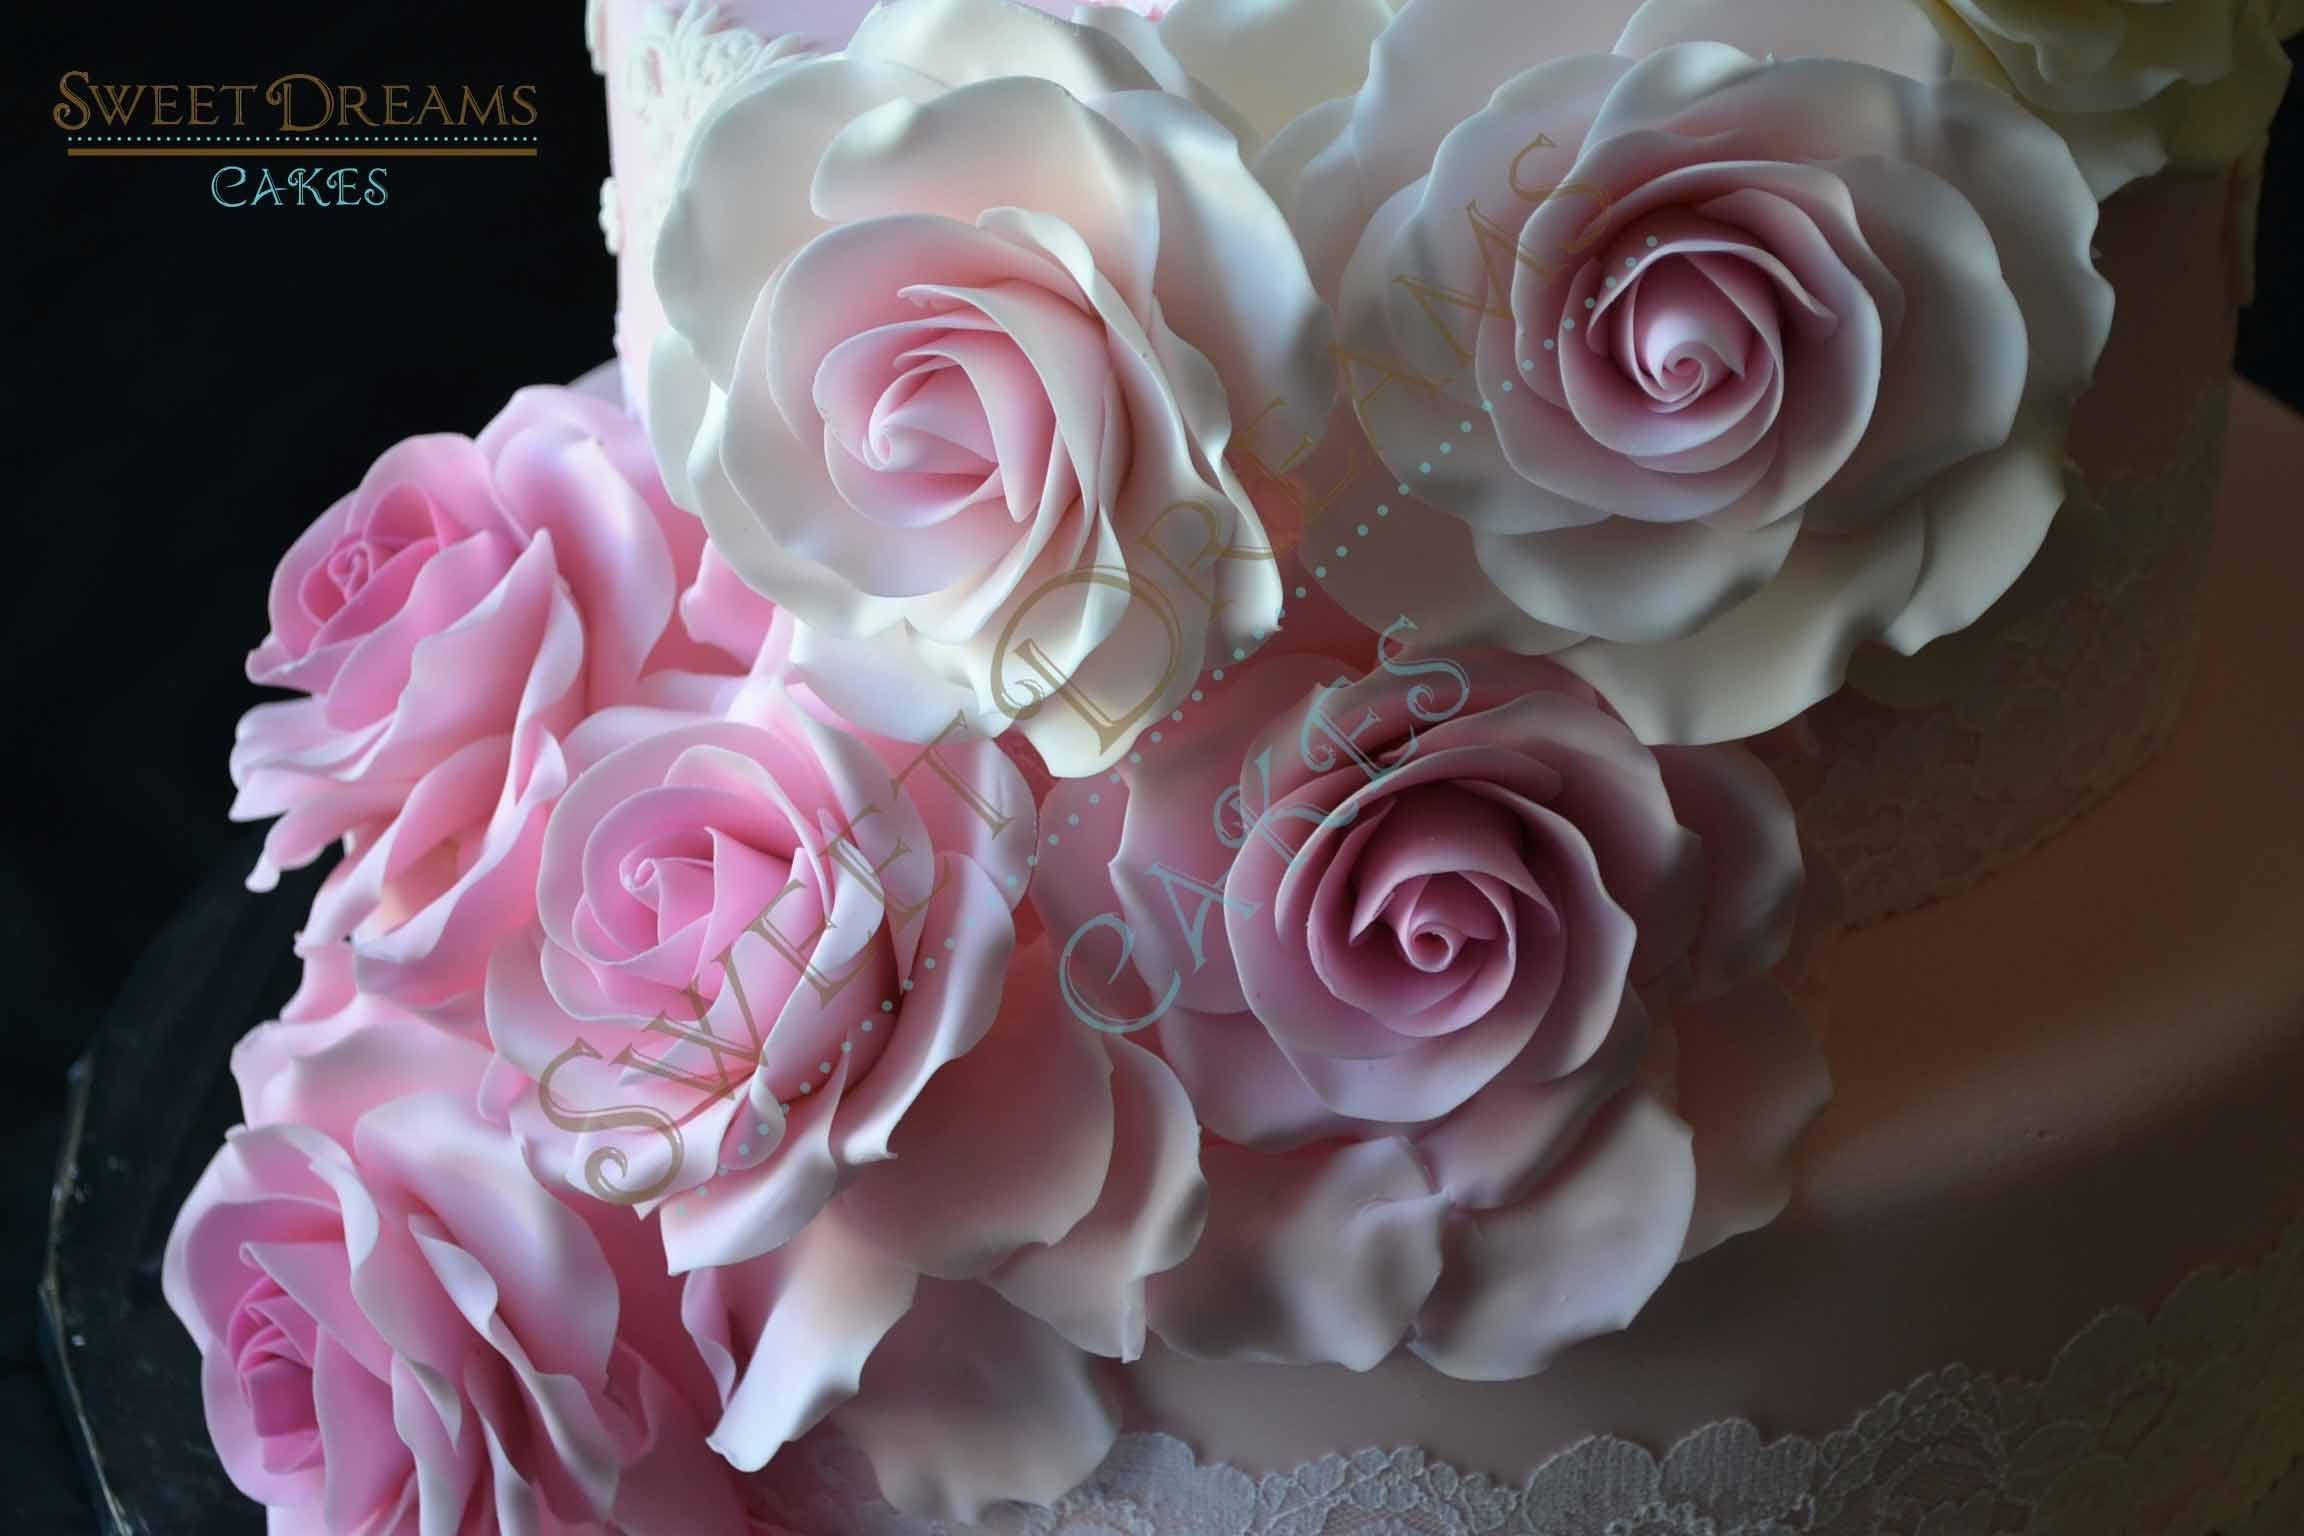 How to make flower petals out of fondant